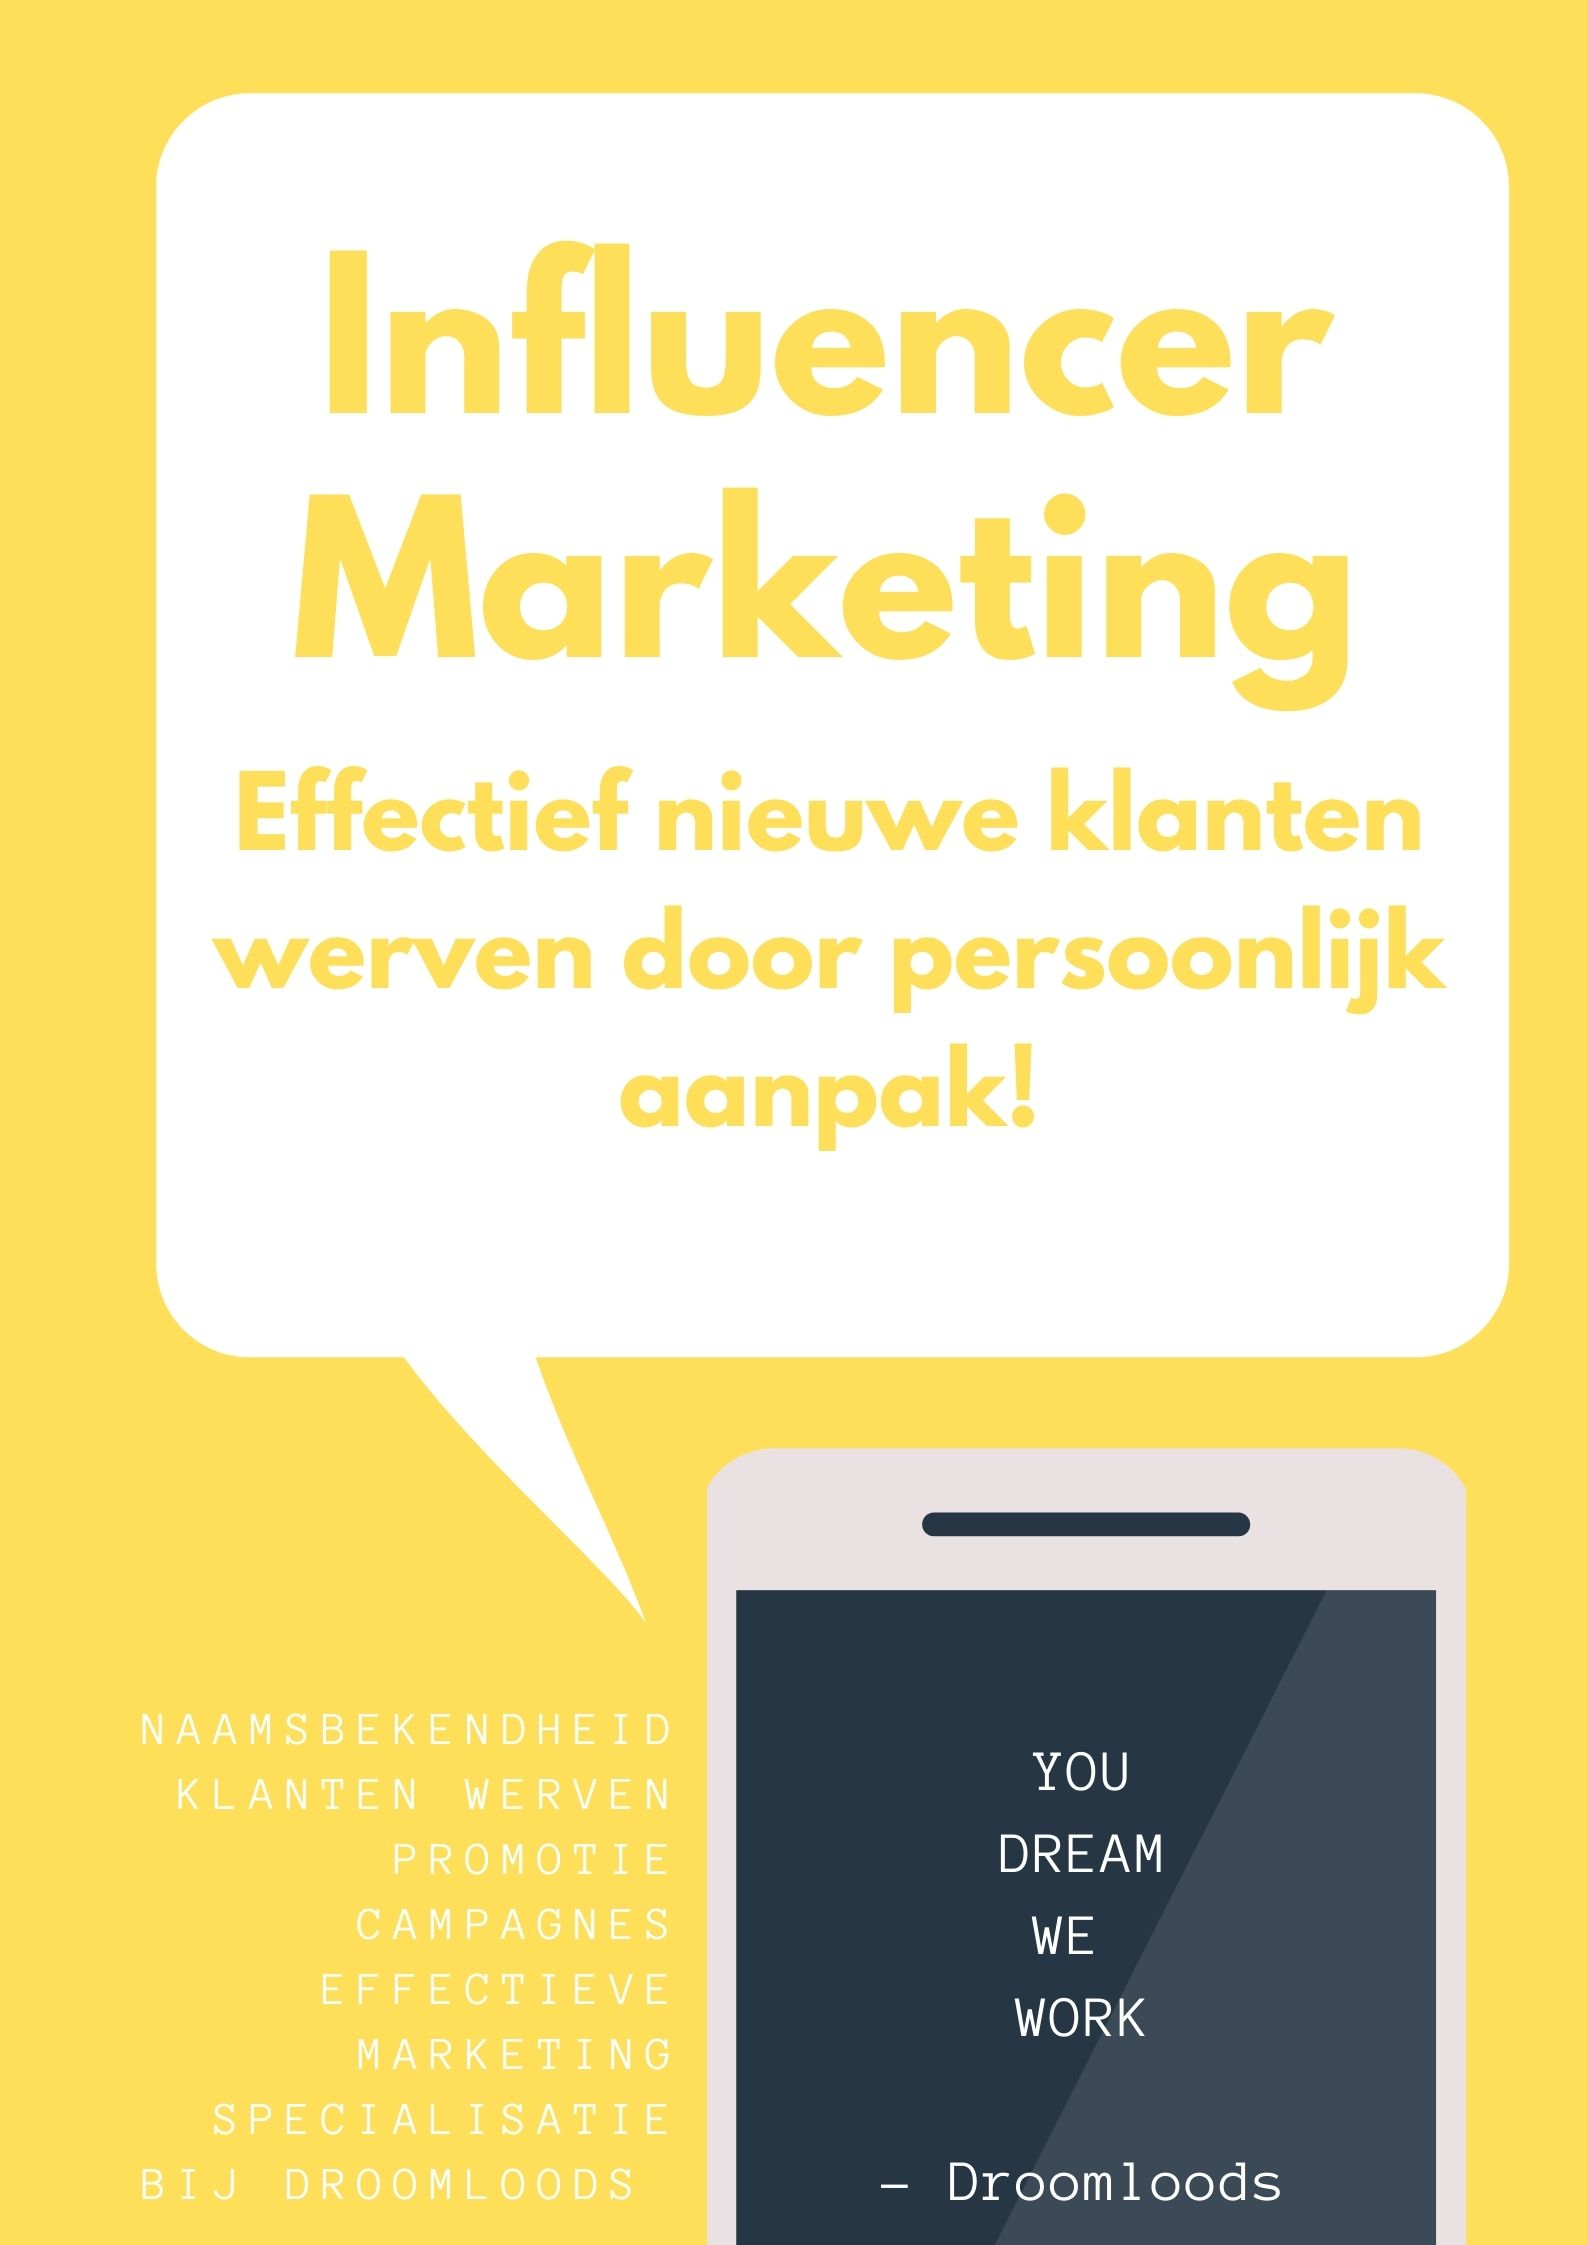 Influencer Marketing Droomloods